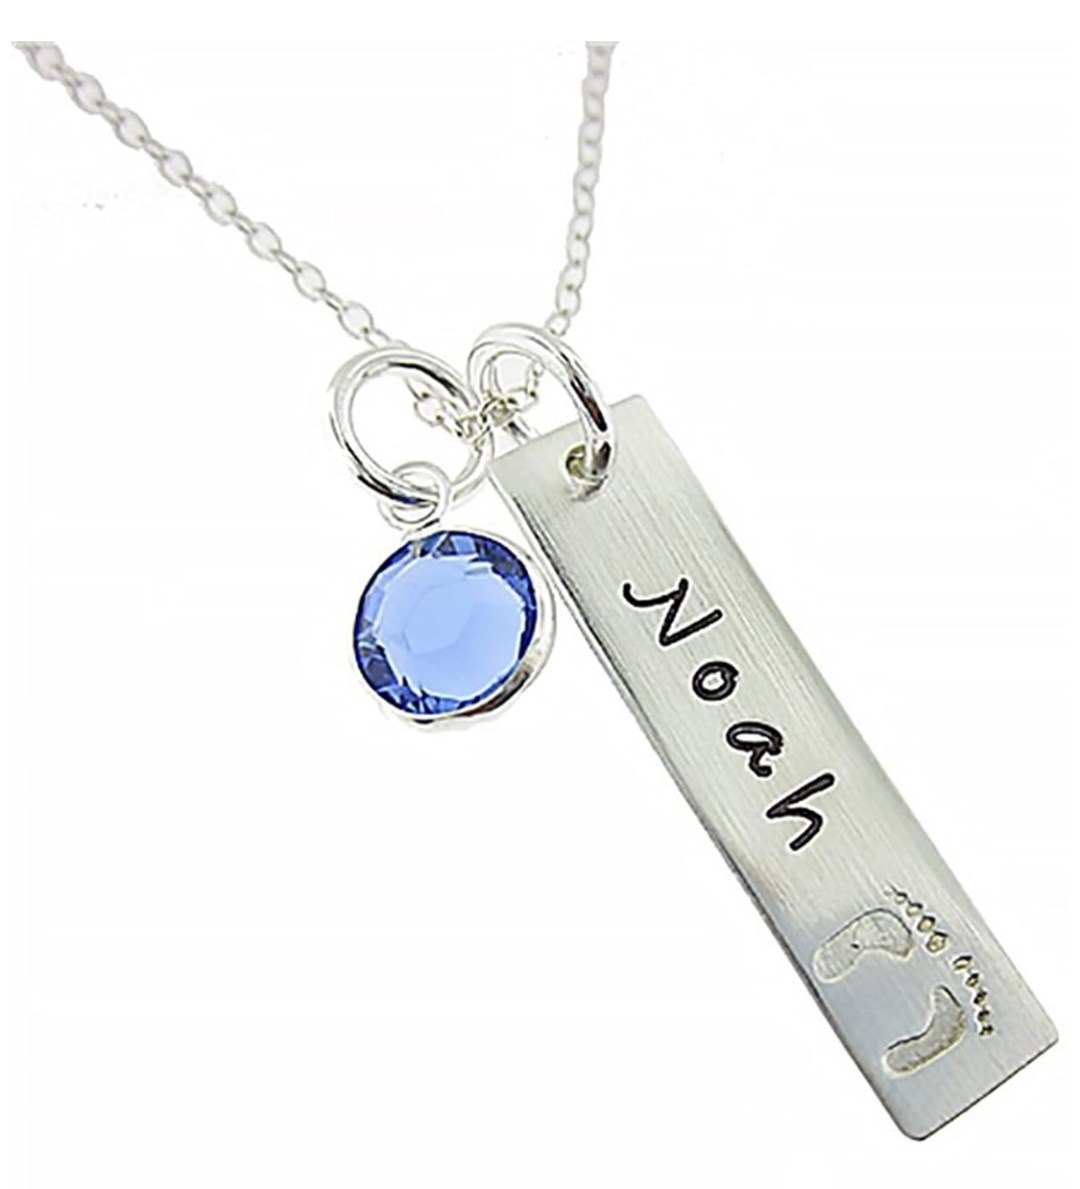 My Tiny Prints Personalized Sterling Silver Name Necklace